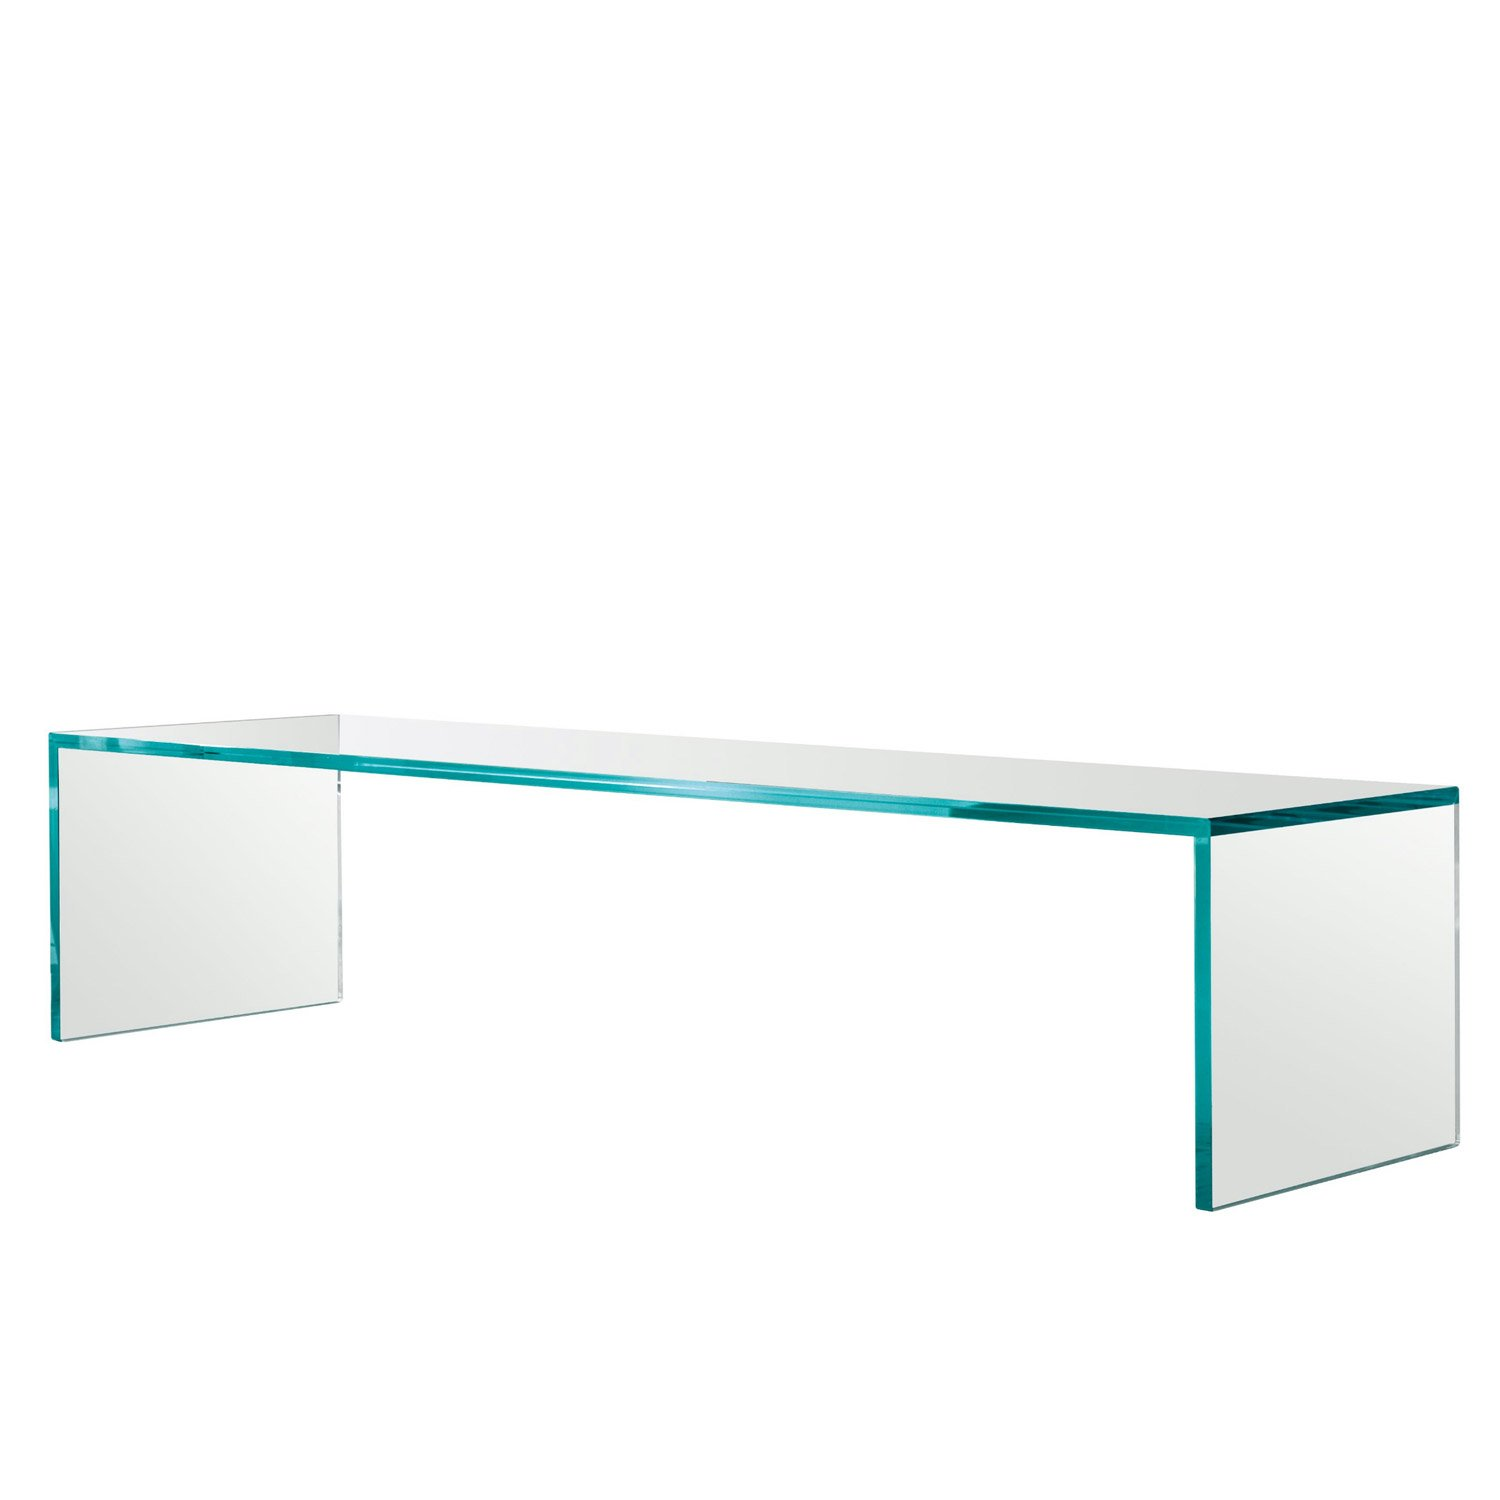 capo horn glass coffee table by tonelli  klarity  glass furniture - klarity  glass furniture shop  glass coffee table  all glass coffeetables  capo horn glass coffee table by tonelli